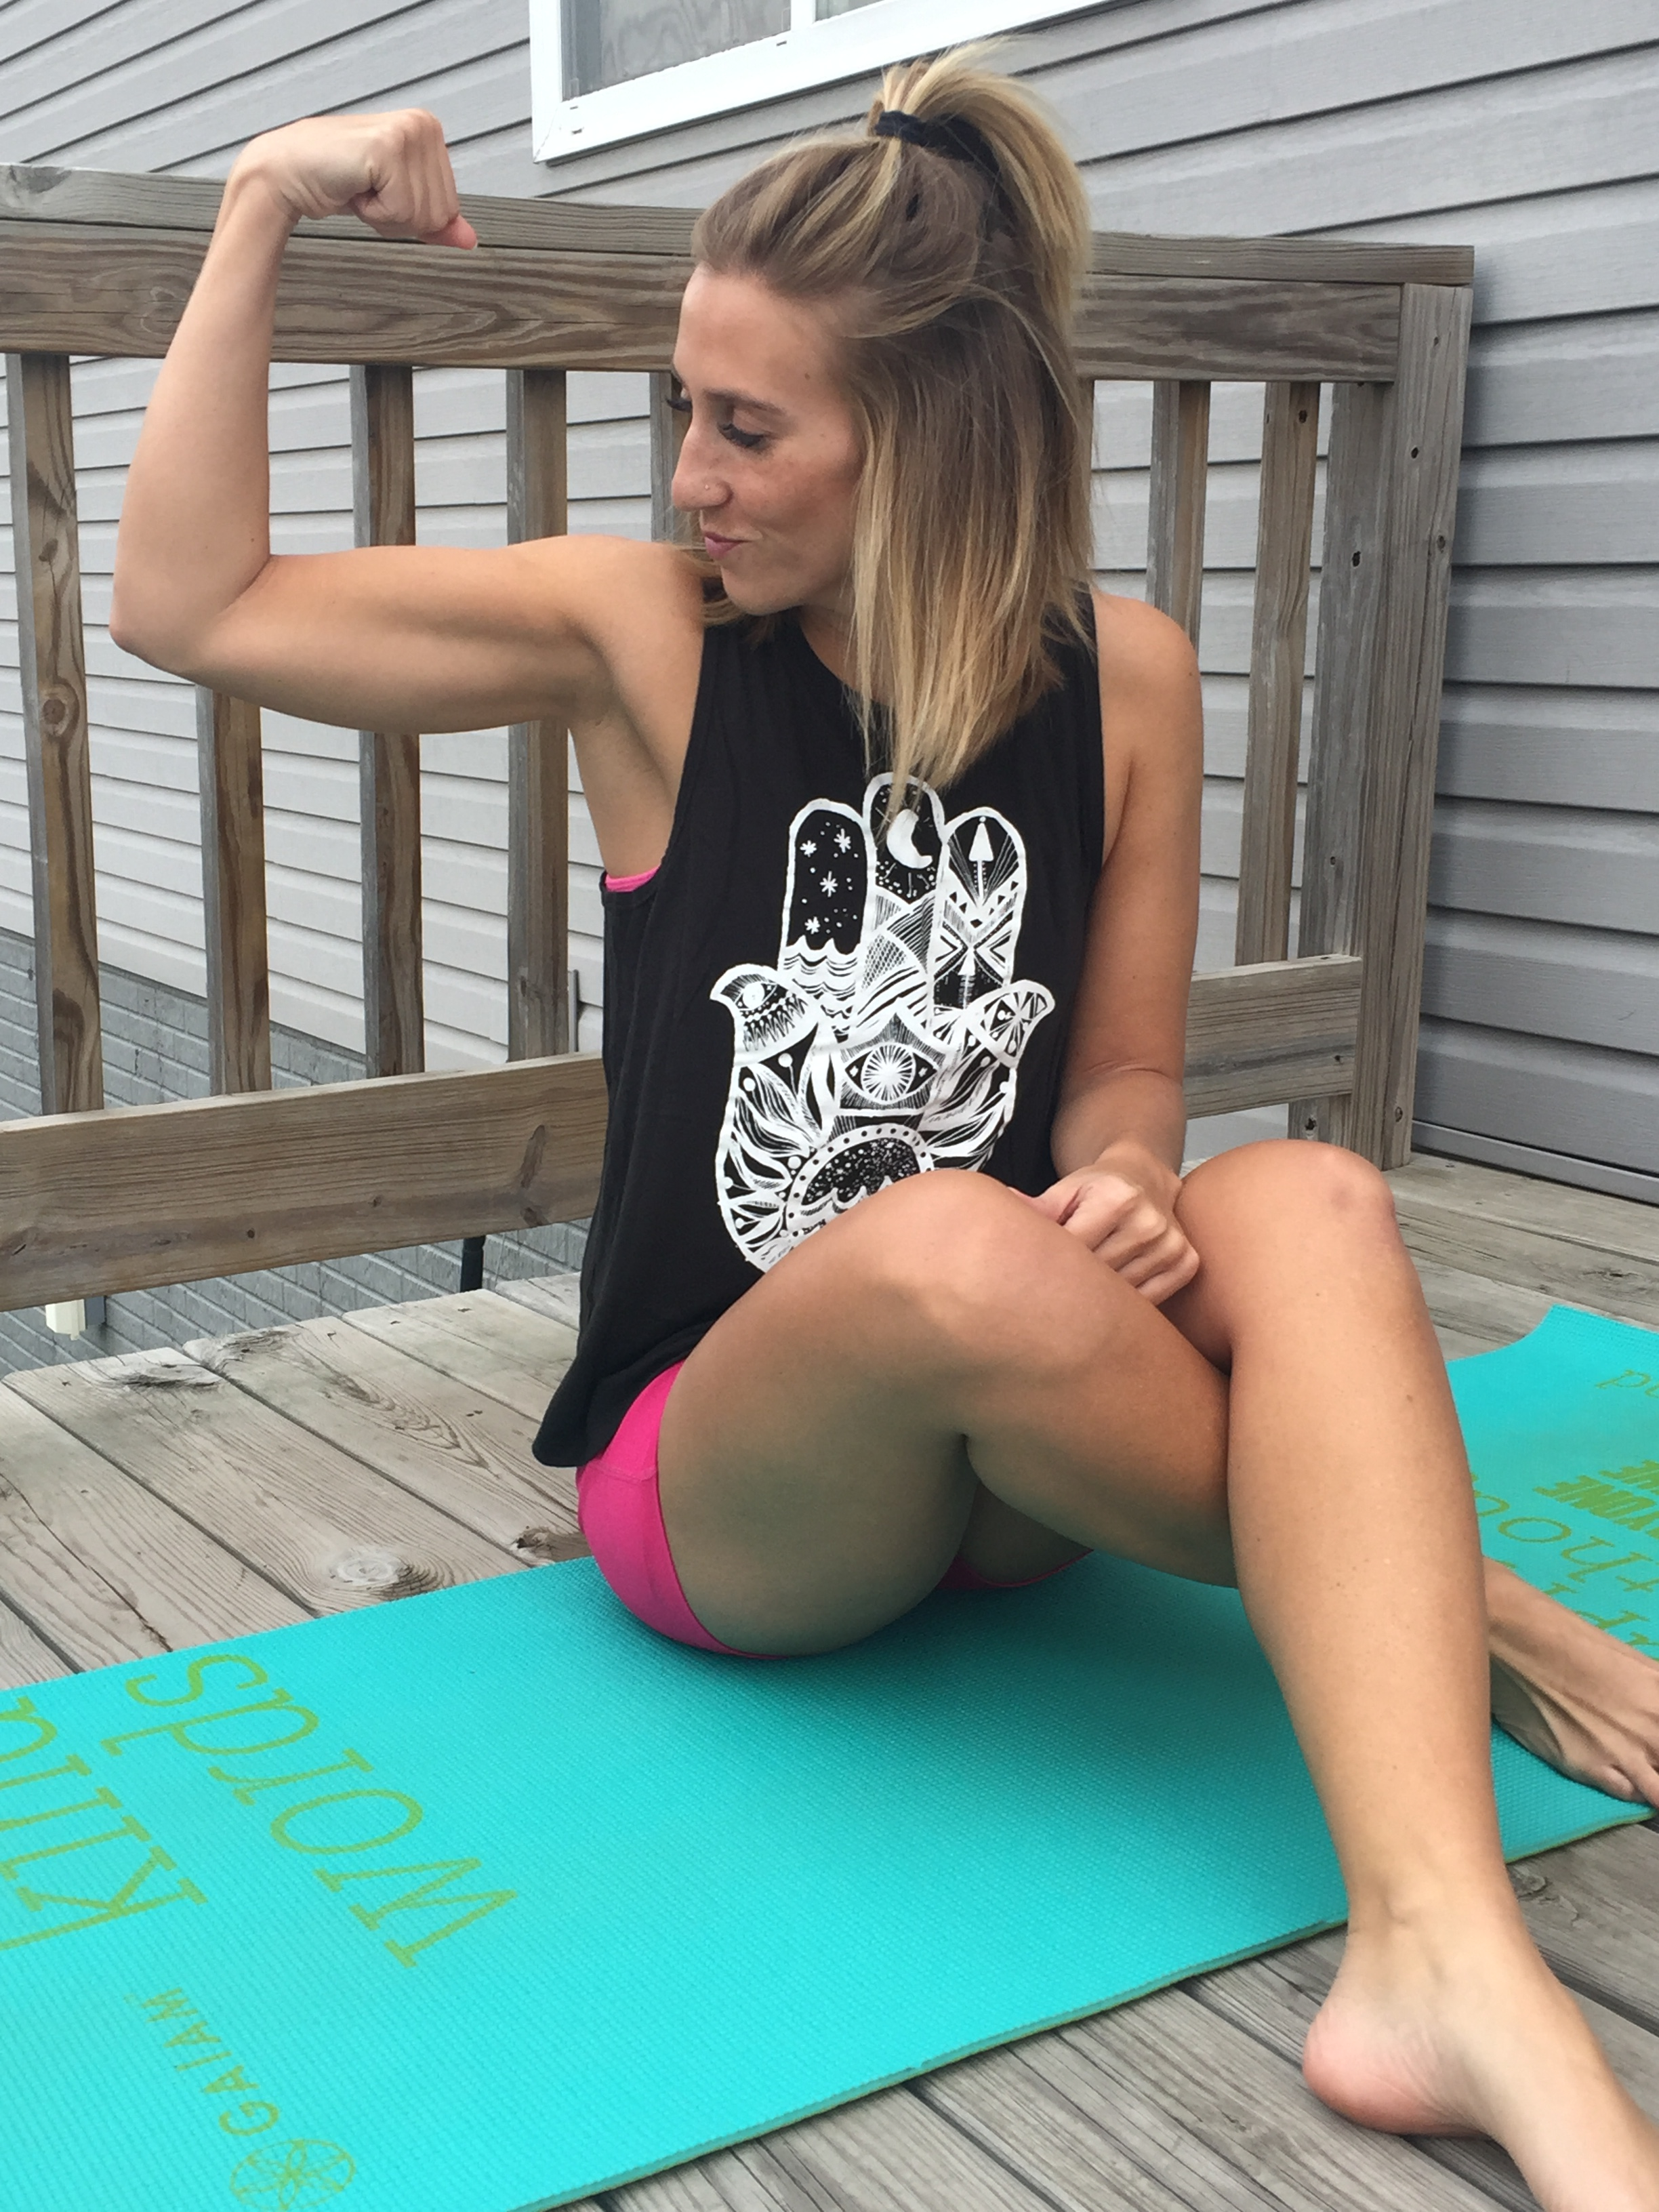 Workout Wednesday: Push-Up Challenge • A Midwestern Mix